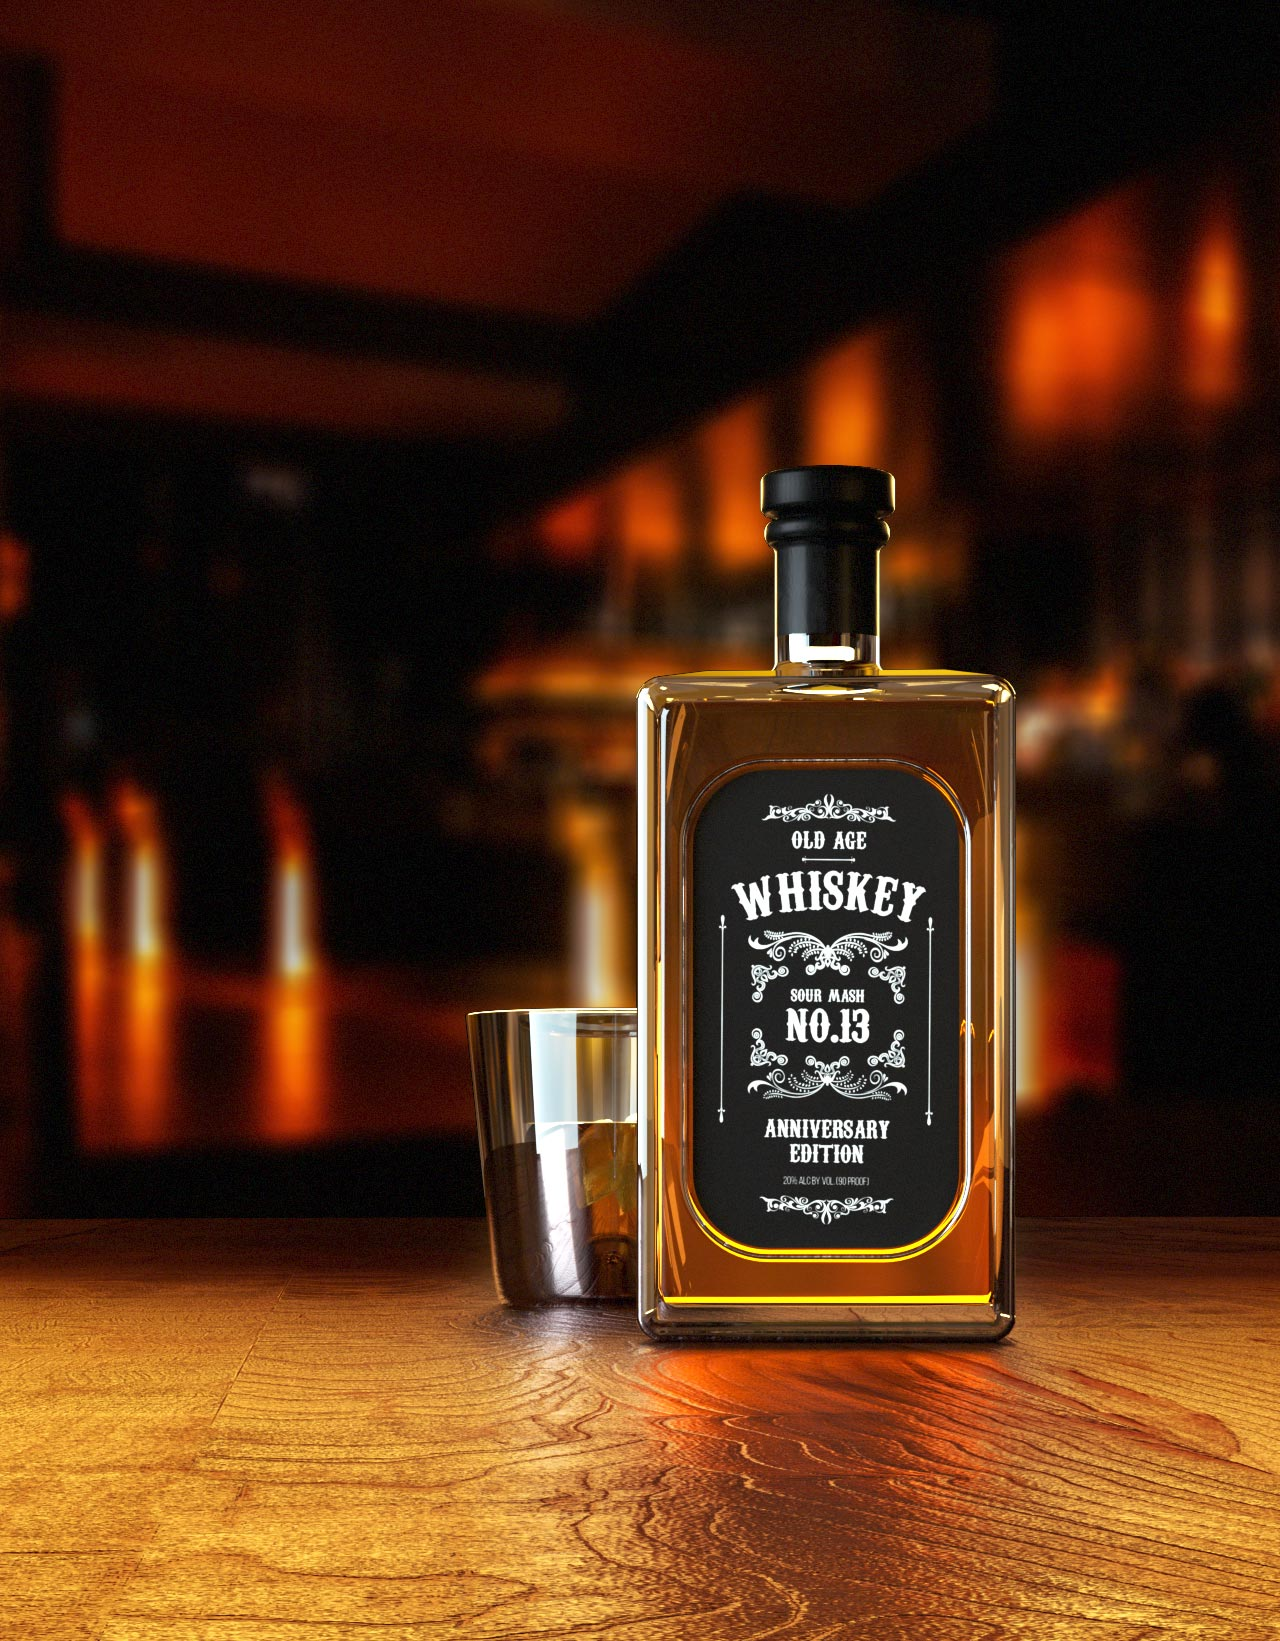 WHISKEY_3D_RENDER_01